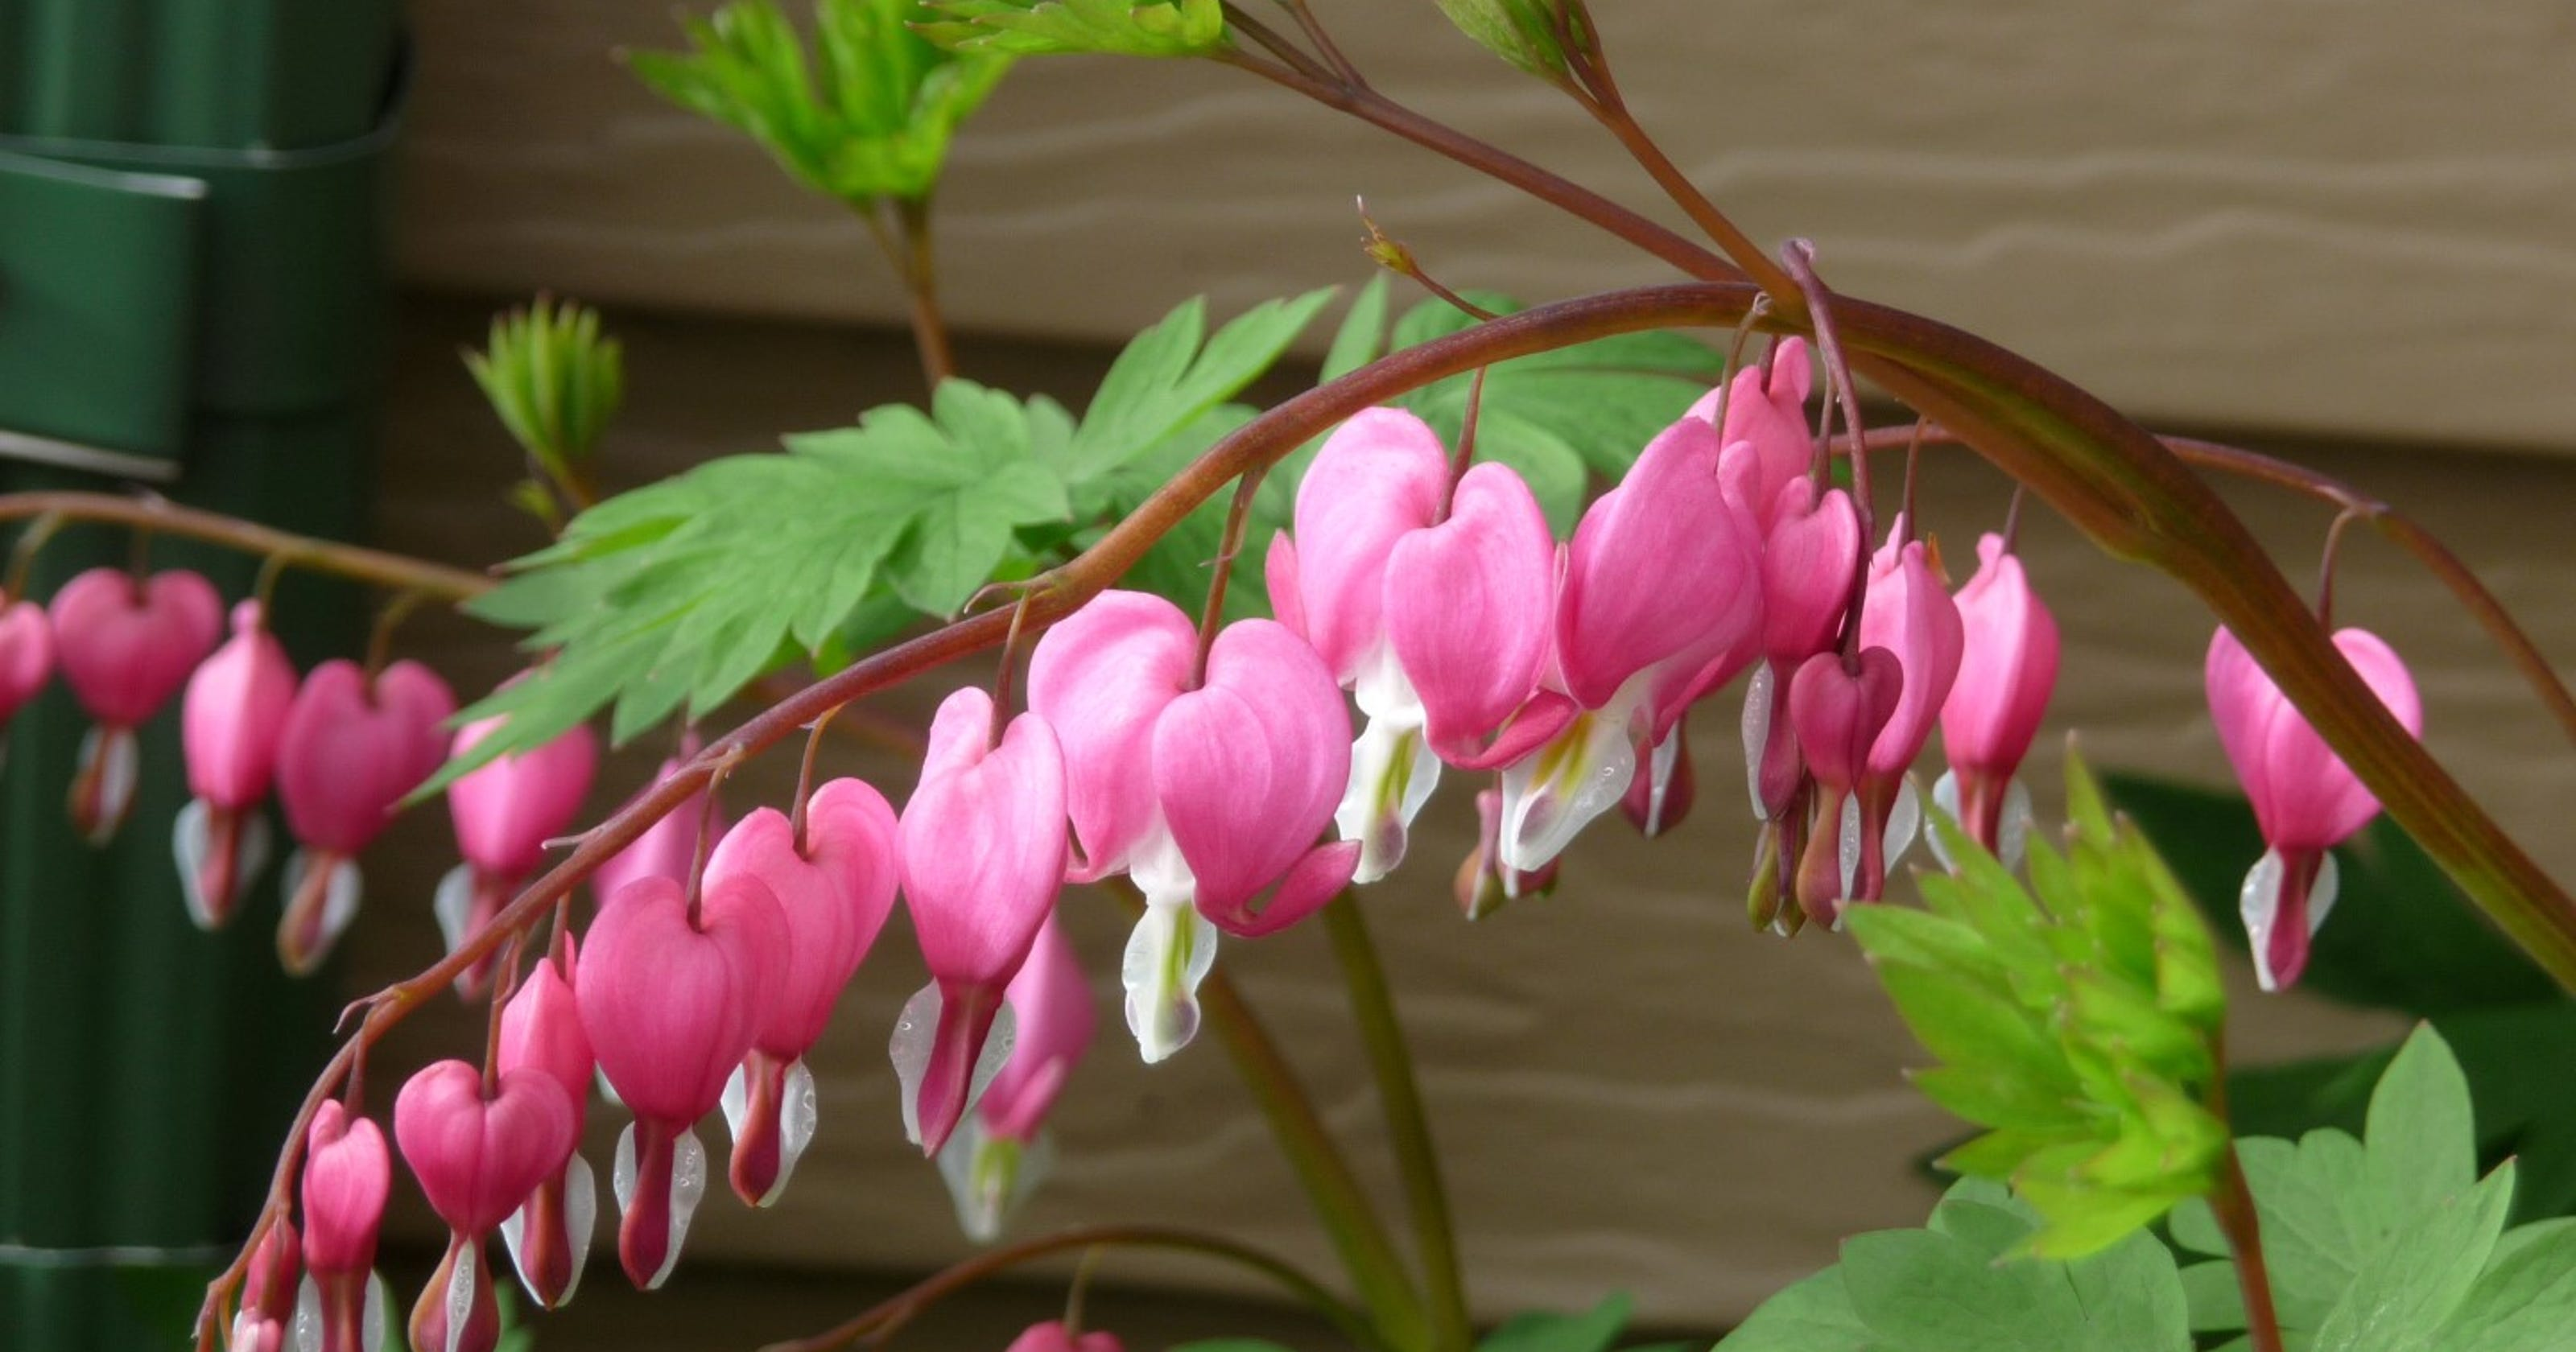 Bleeding Hearts Are Dainty But Hardy